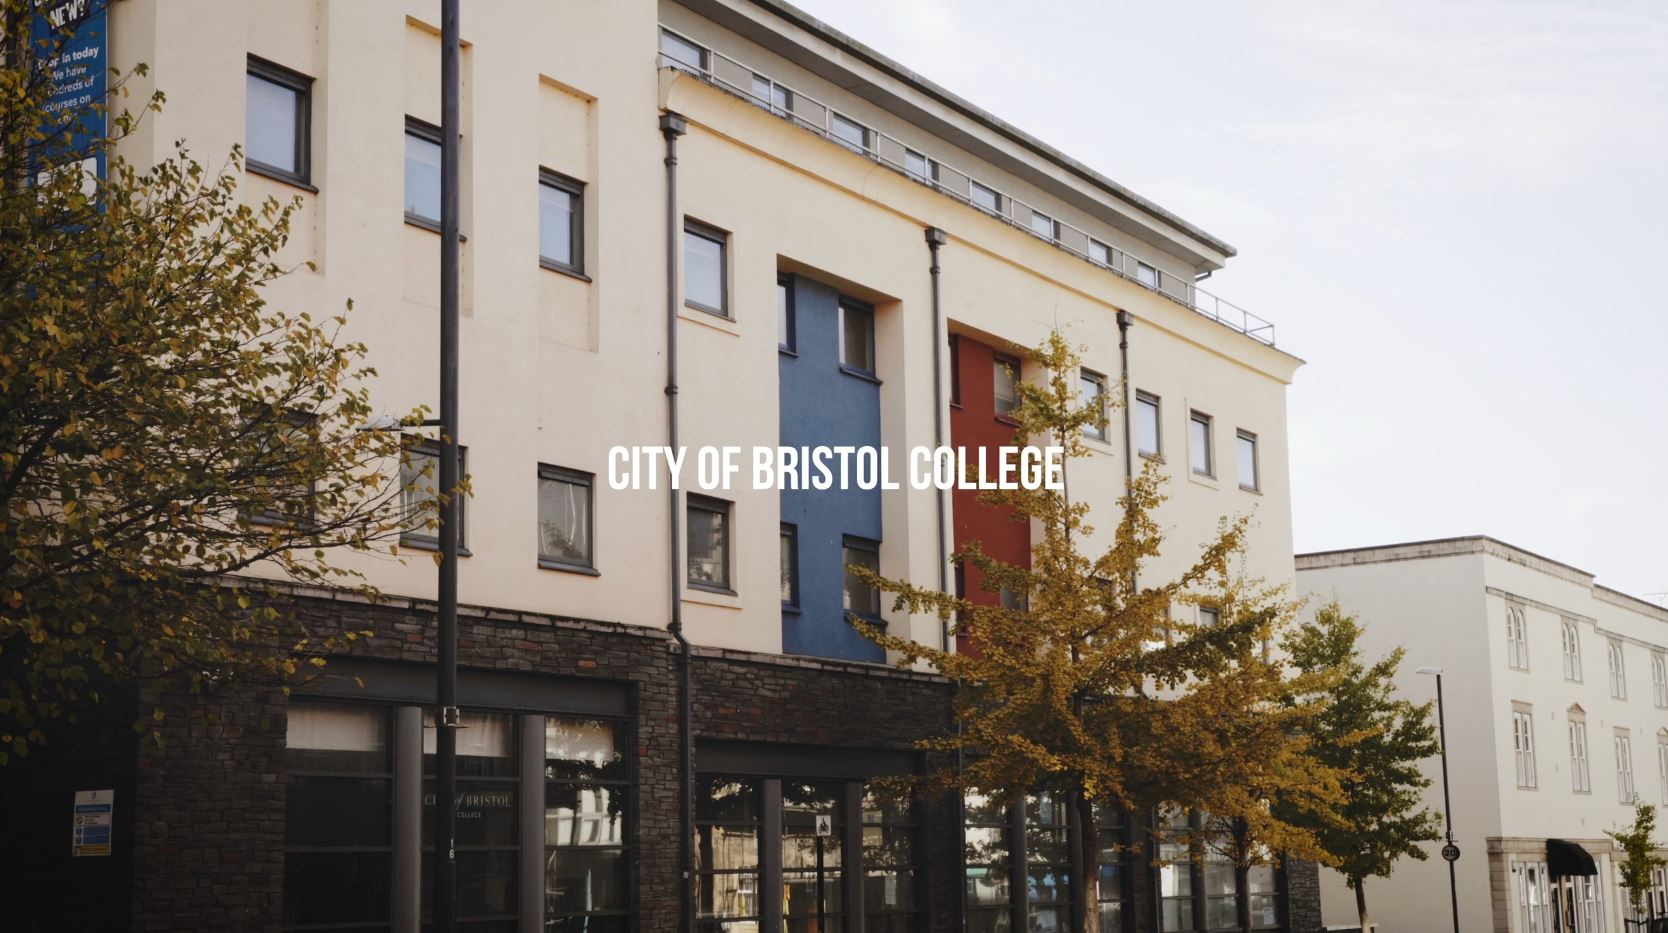 City of Bristol College ensures safety for all